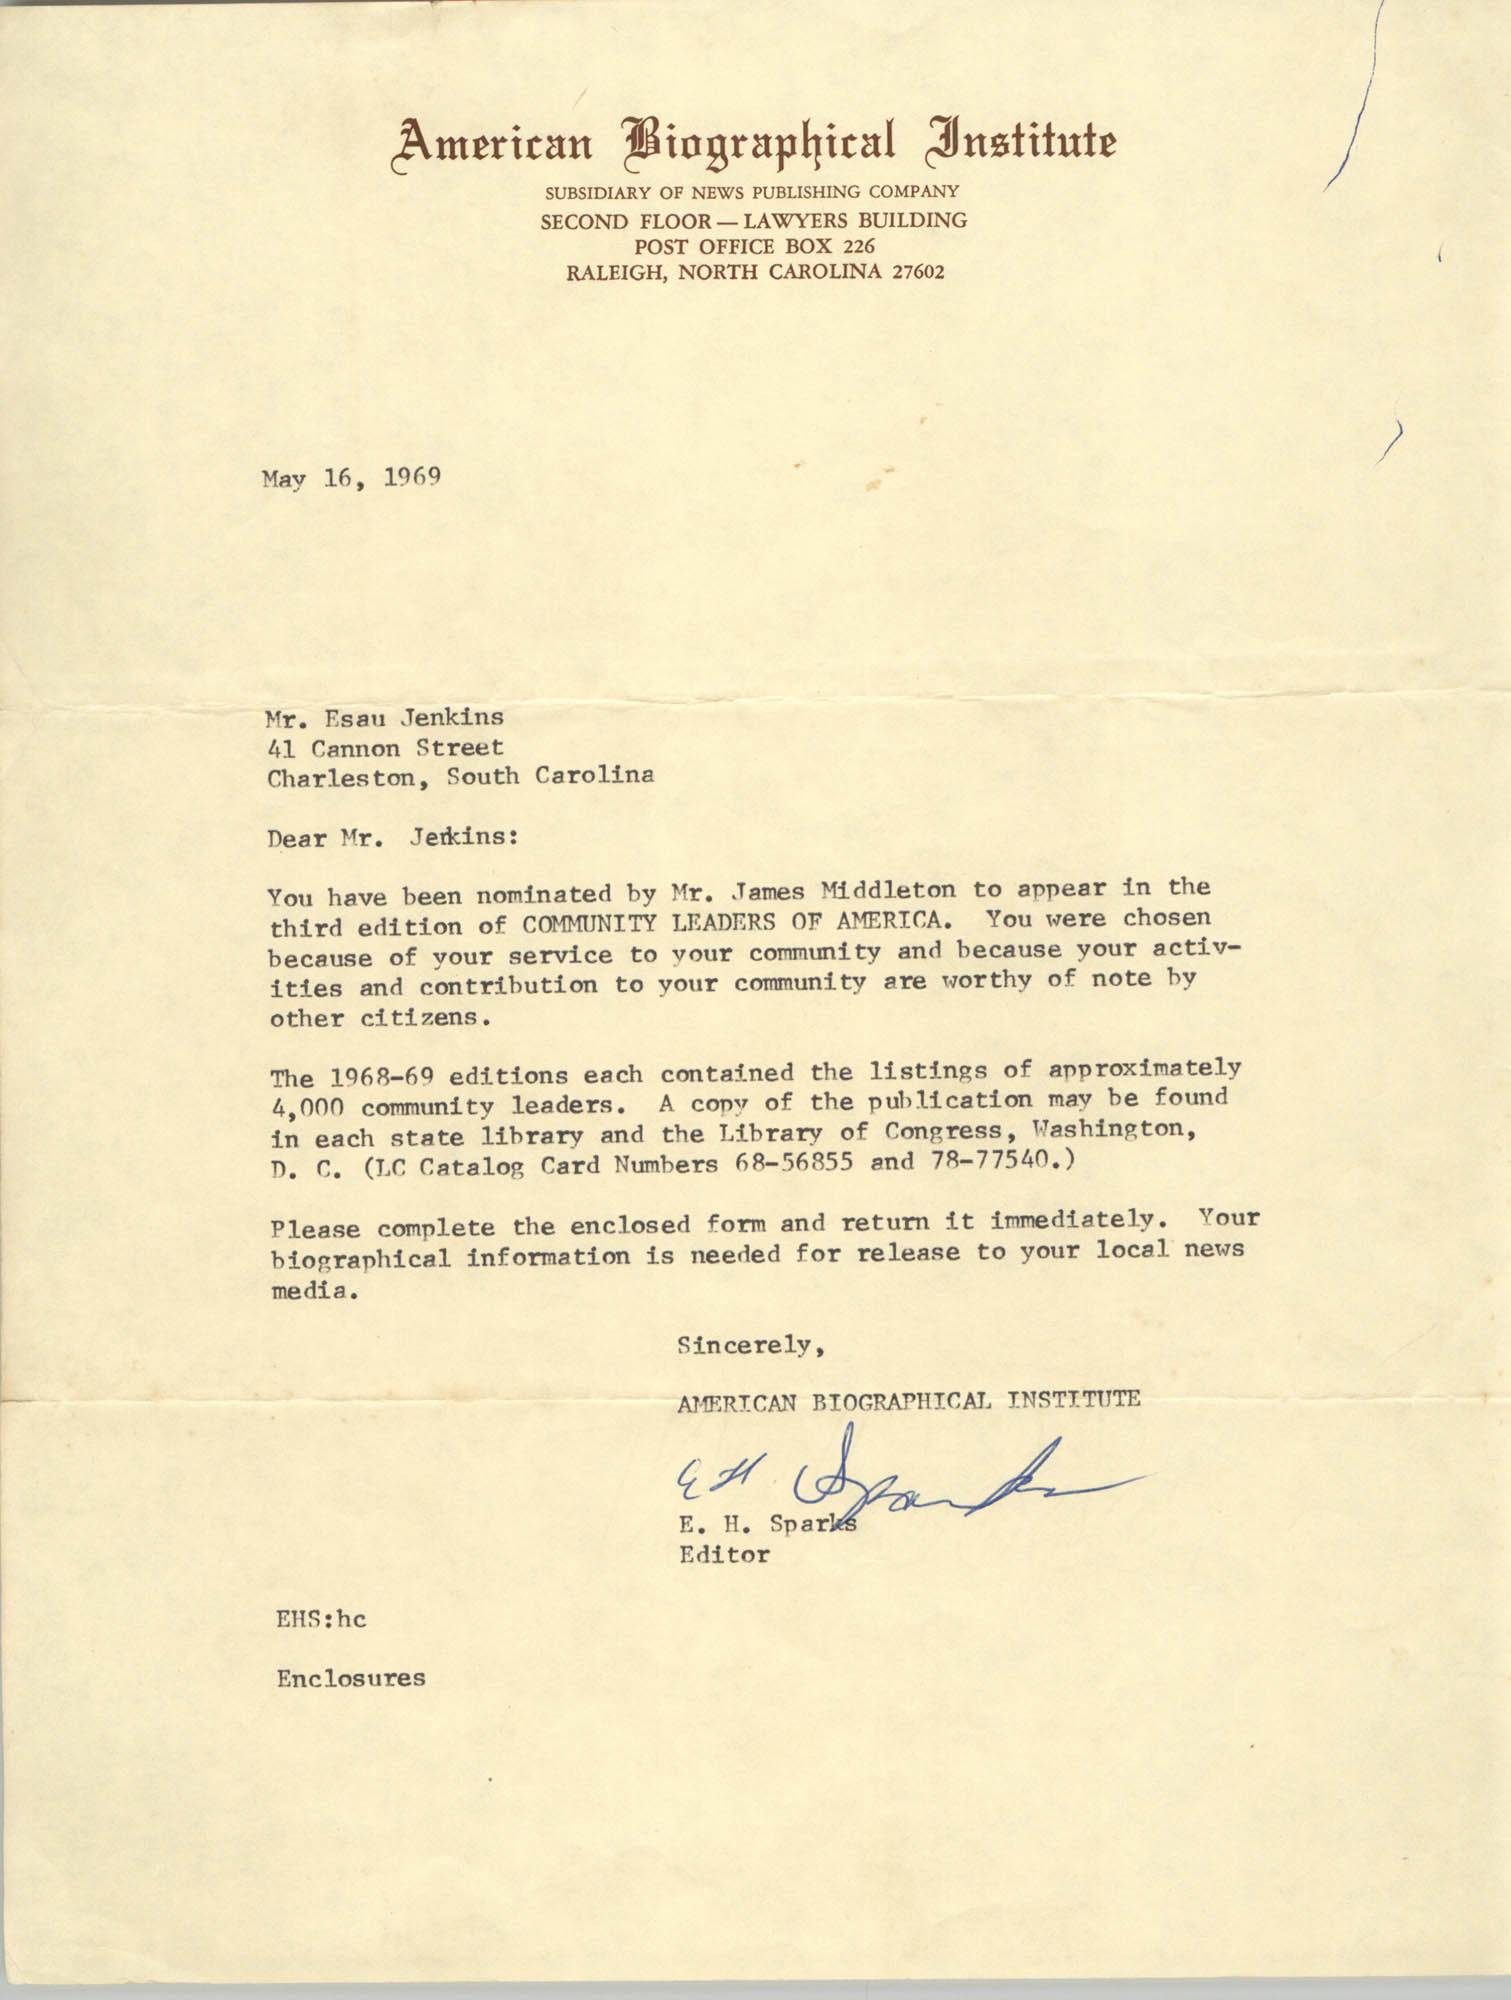 Letter from E. H. Sparks to Esau Jenkins, May 16, 1969